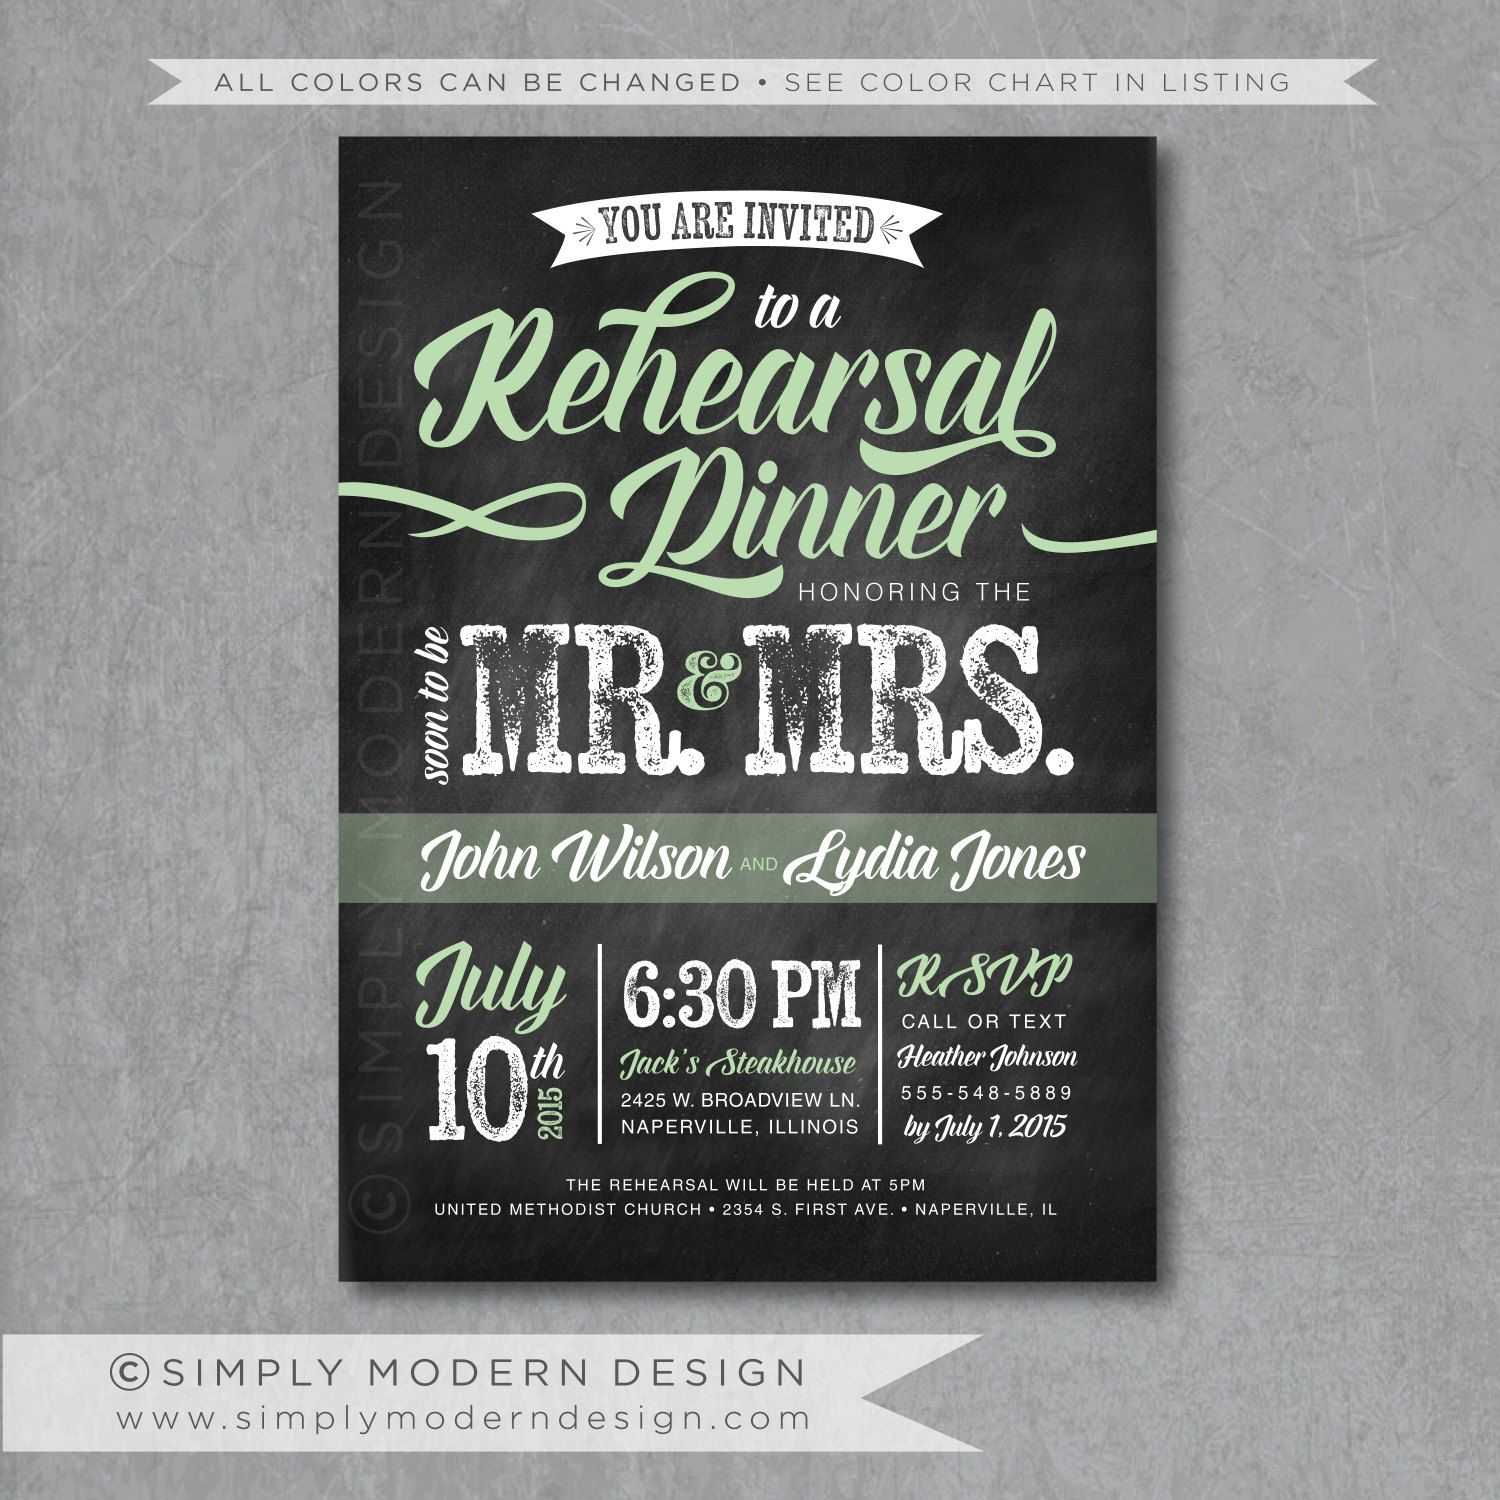 creative wording for rehearsal dinner invitations%0A rehearsal dinner invitation  chalkboard  wedding  invitation  chalkboard  invitation  dinner party  PRINTABLE or PRINTED INVITATIONS